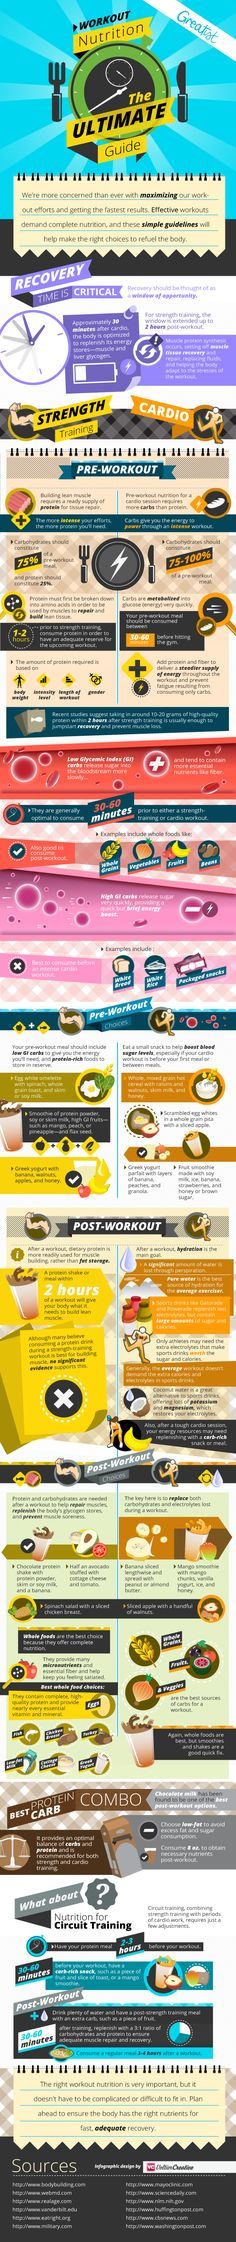 Pre/Post Workout for cardio and strength training